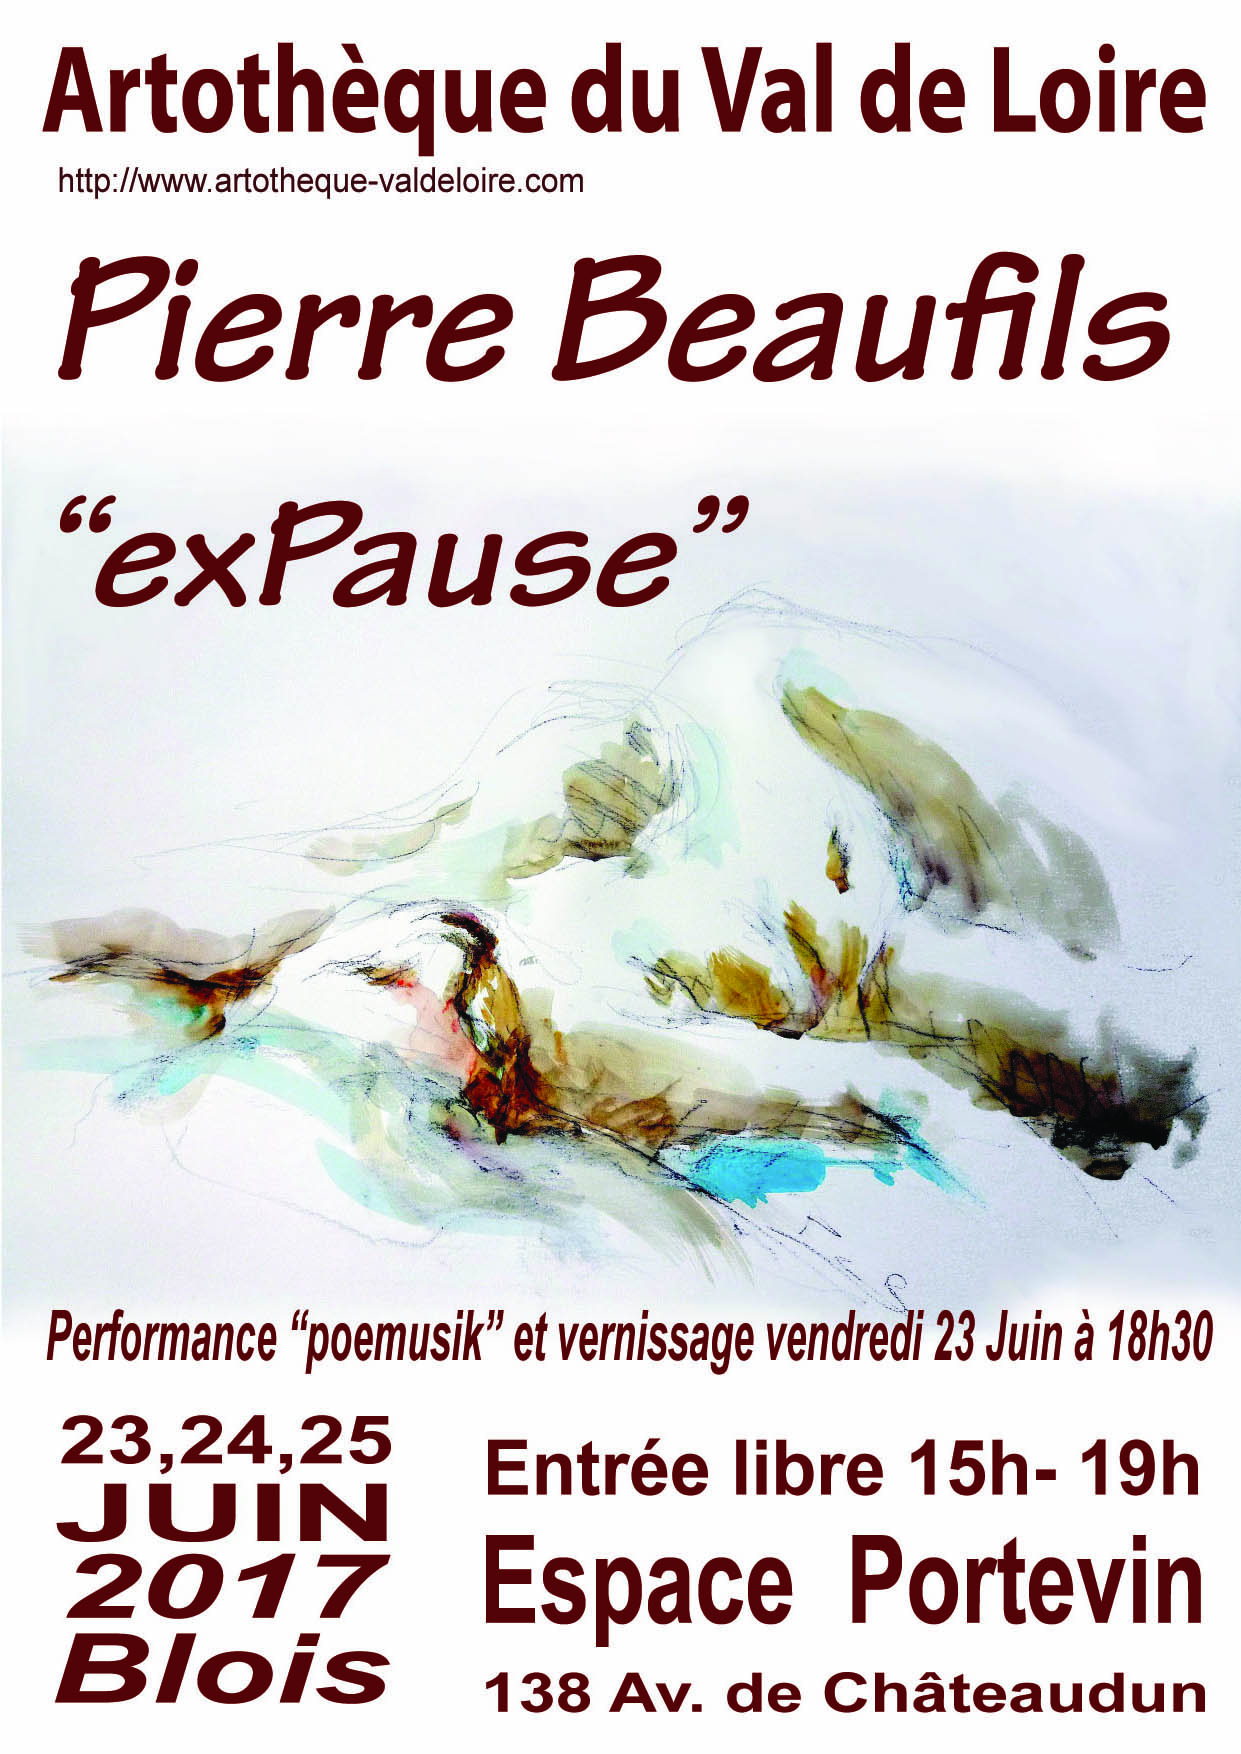 Expause